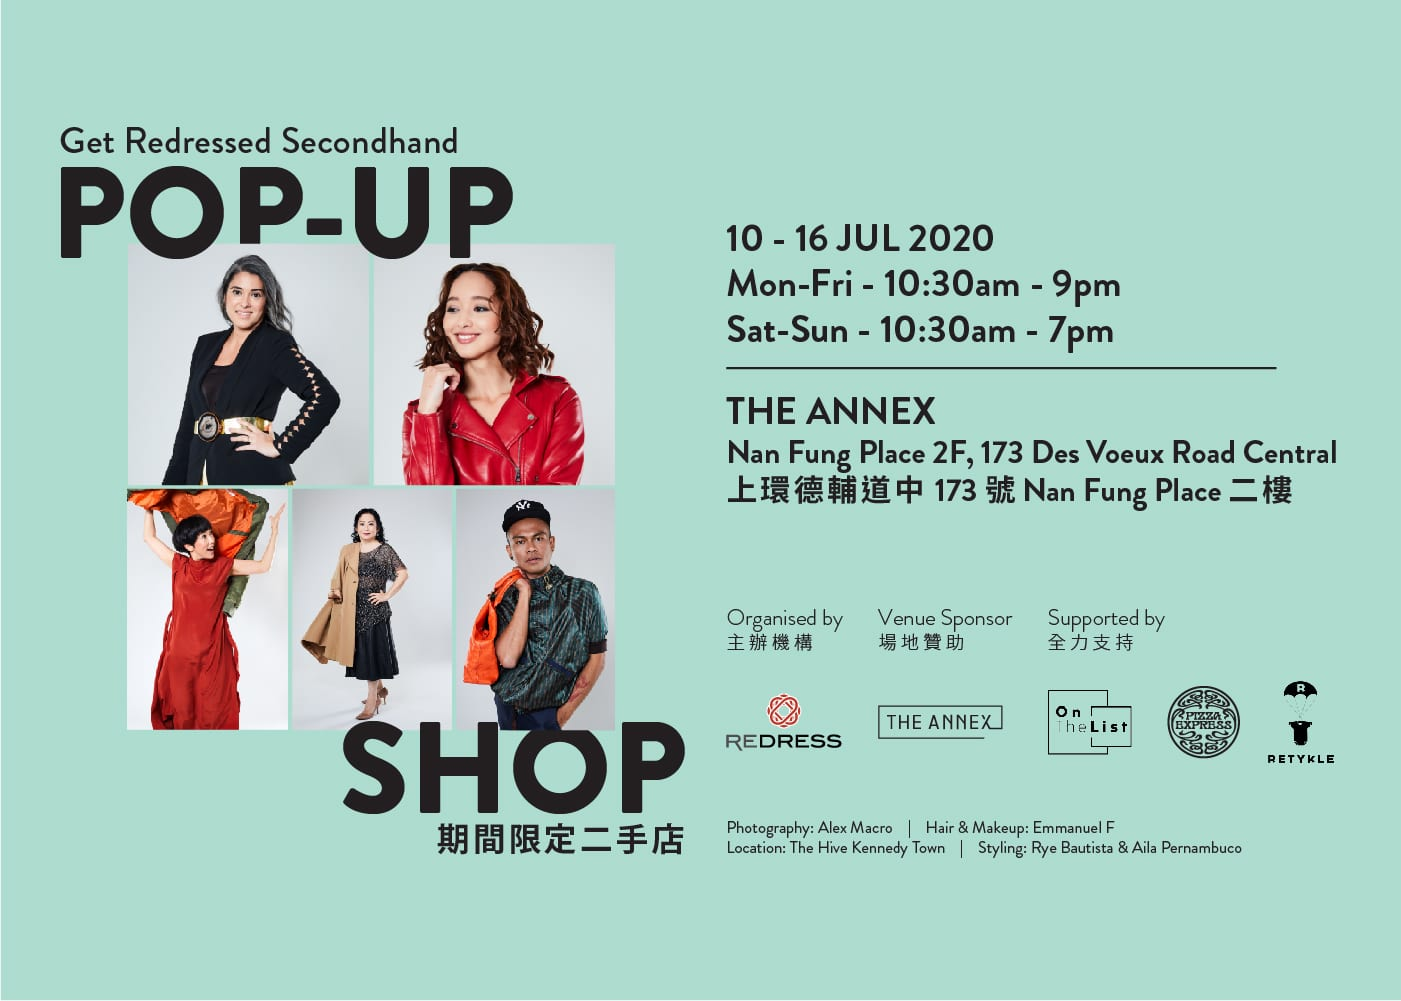 Get Redressed Secondhand Pop-up Shop